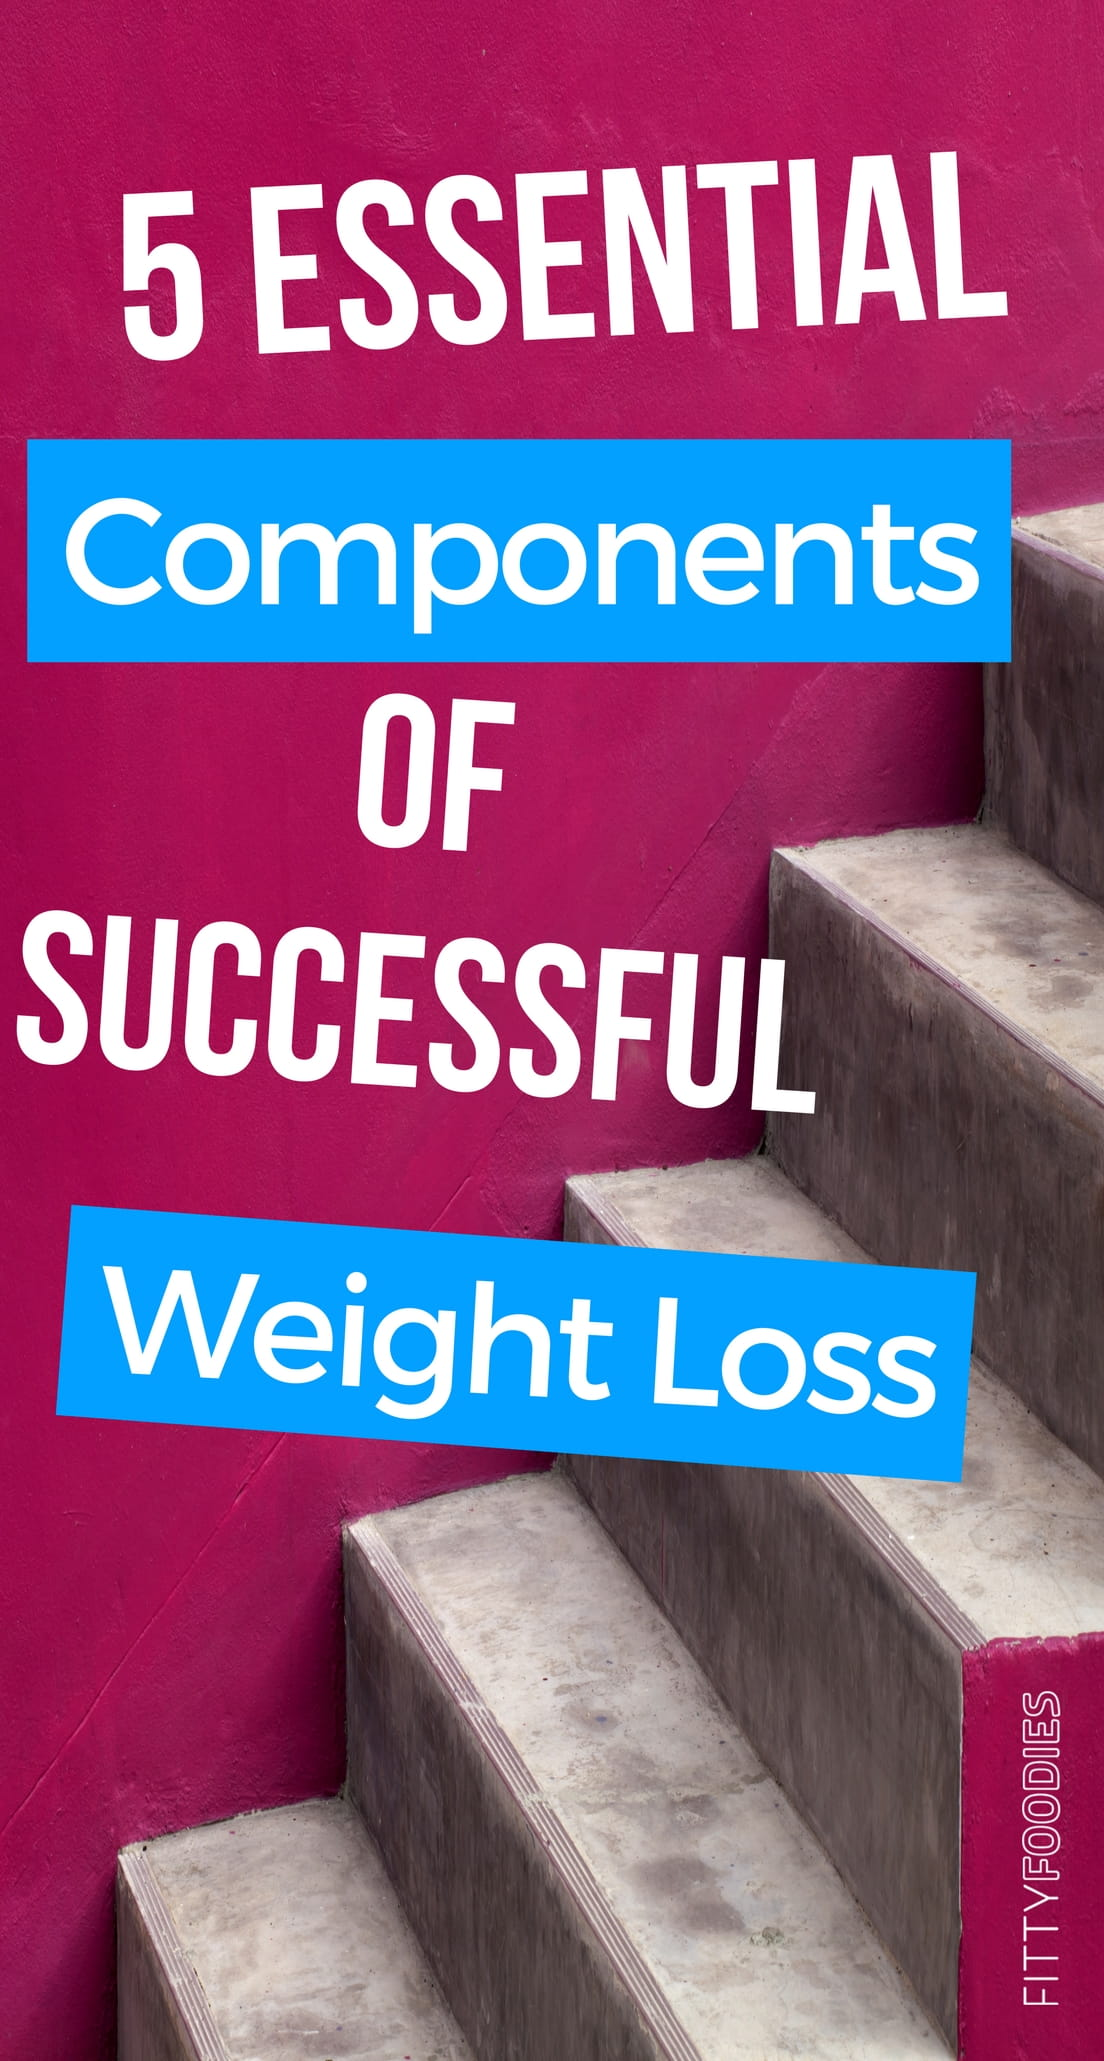 Diet And Weight Loss Tips   Lose Weight Tips And Tricks   How To Start To Lose Weight   Diet Plans To Lose Weight For Women